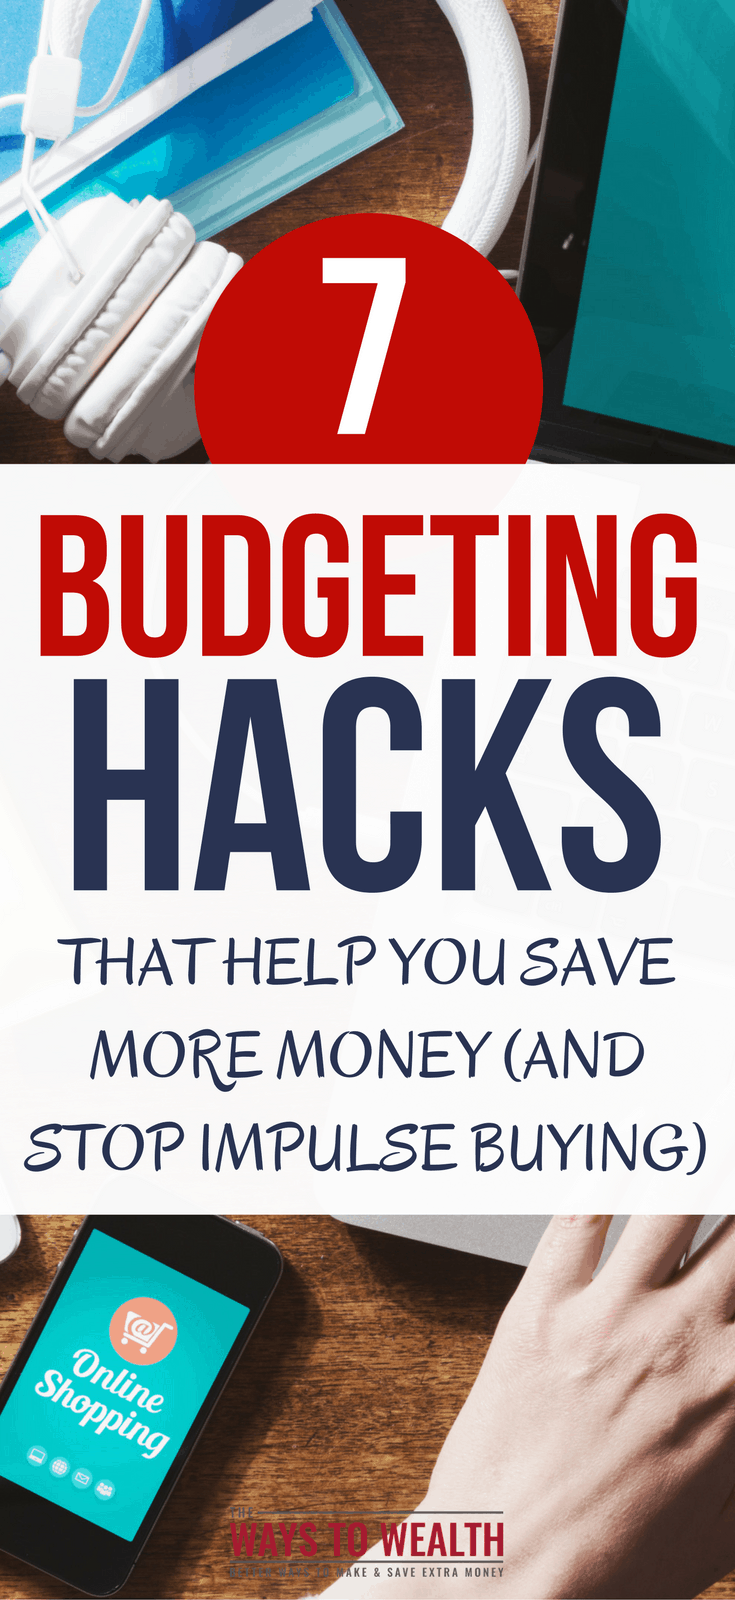 How to Stop Impulse Buying for Good (Budgeting Hacks for People Who Have Failed) | Discover the proven ways to stop impulse buying for good. These researched budgeting hacks will increase your self-control and allow you to control your spending.